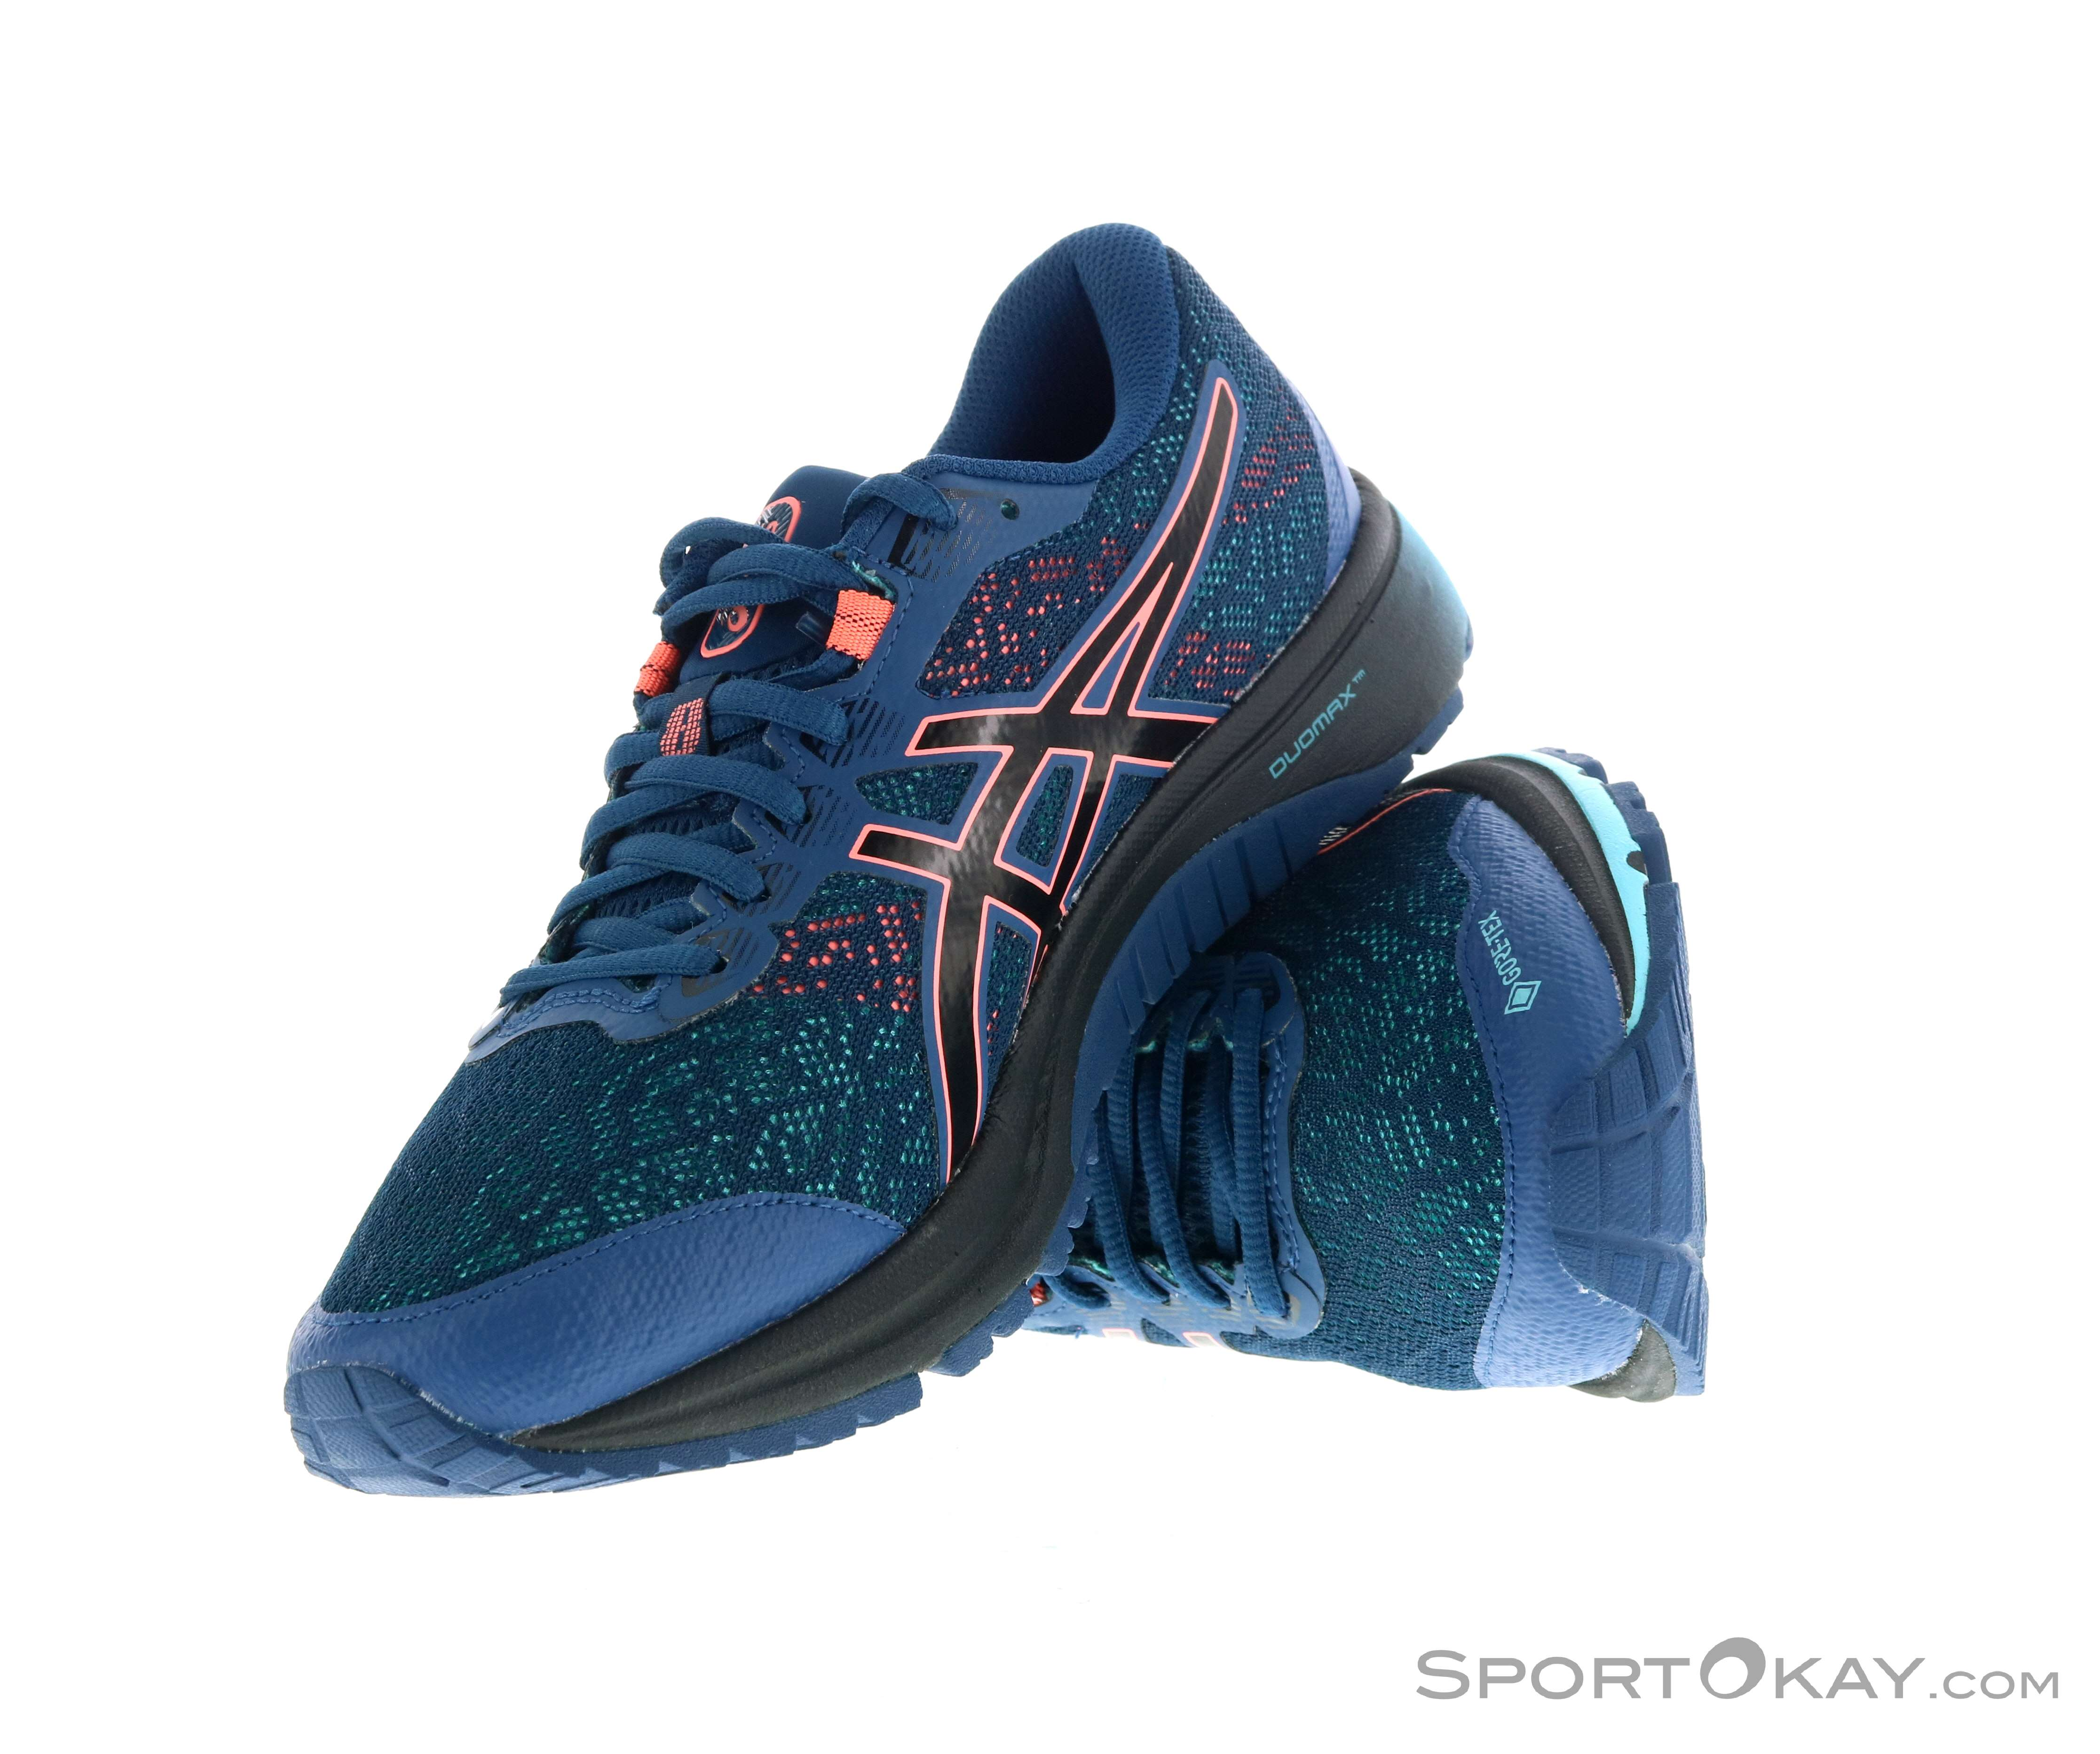 Asics GT-1000 8 G-TX Womens Running Shoes Gore-Tex - All ...